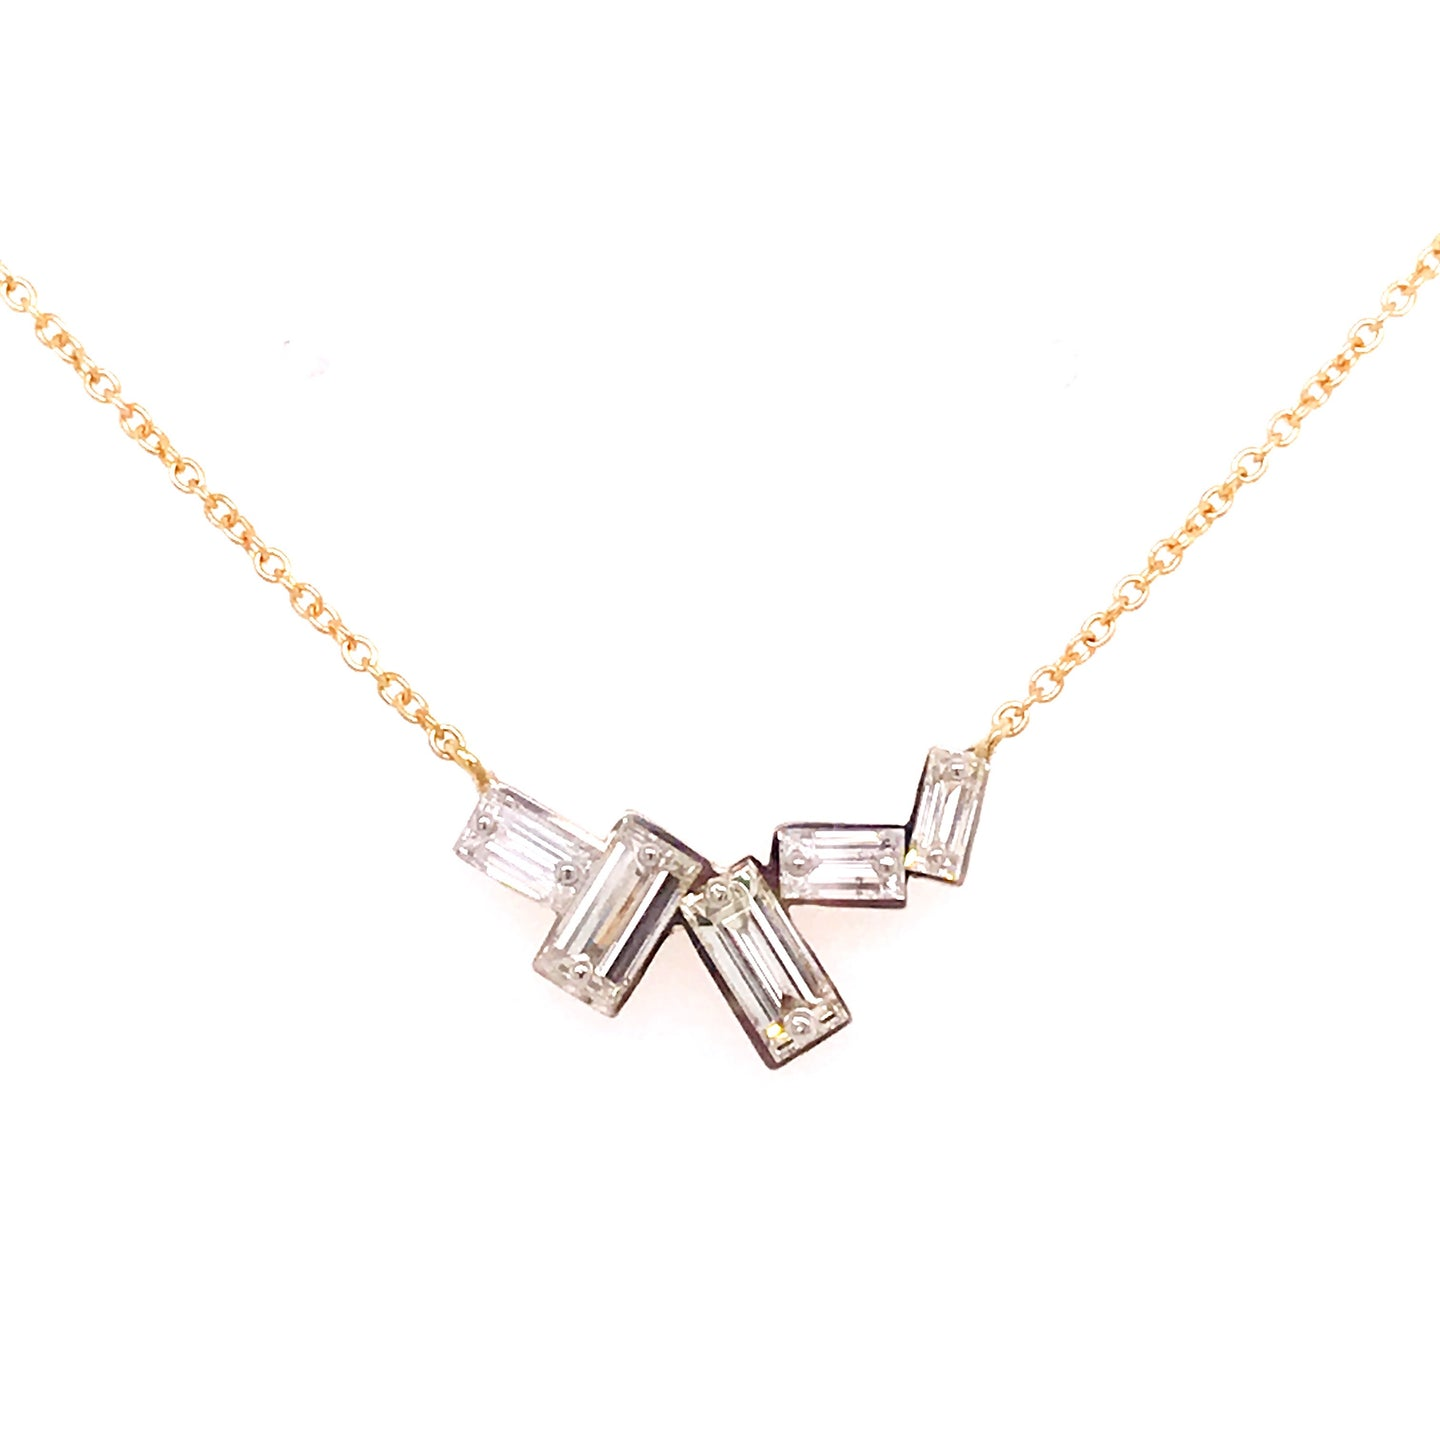 Baguette Diamond Necklace